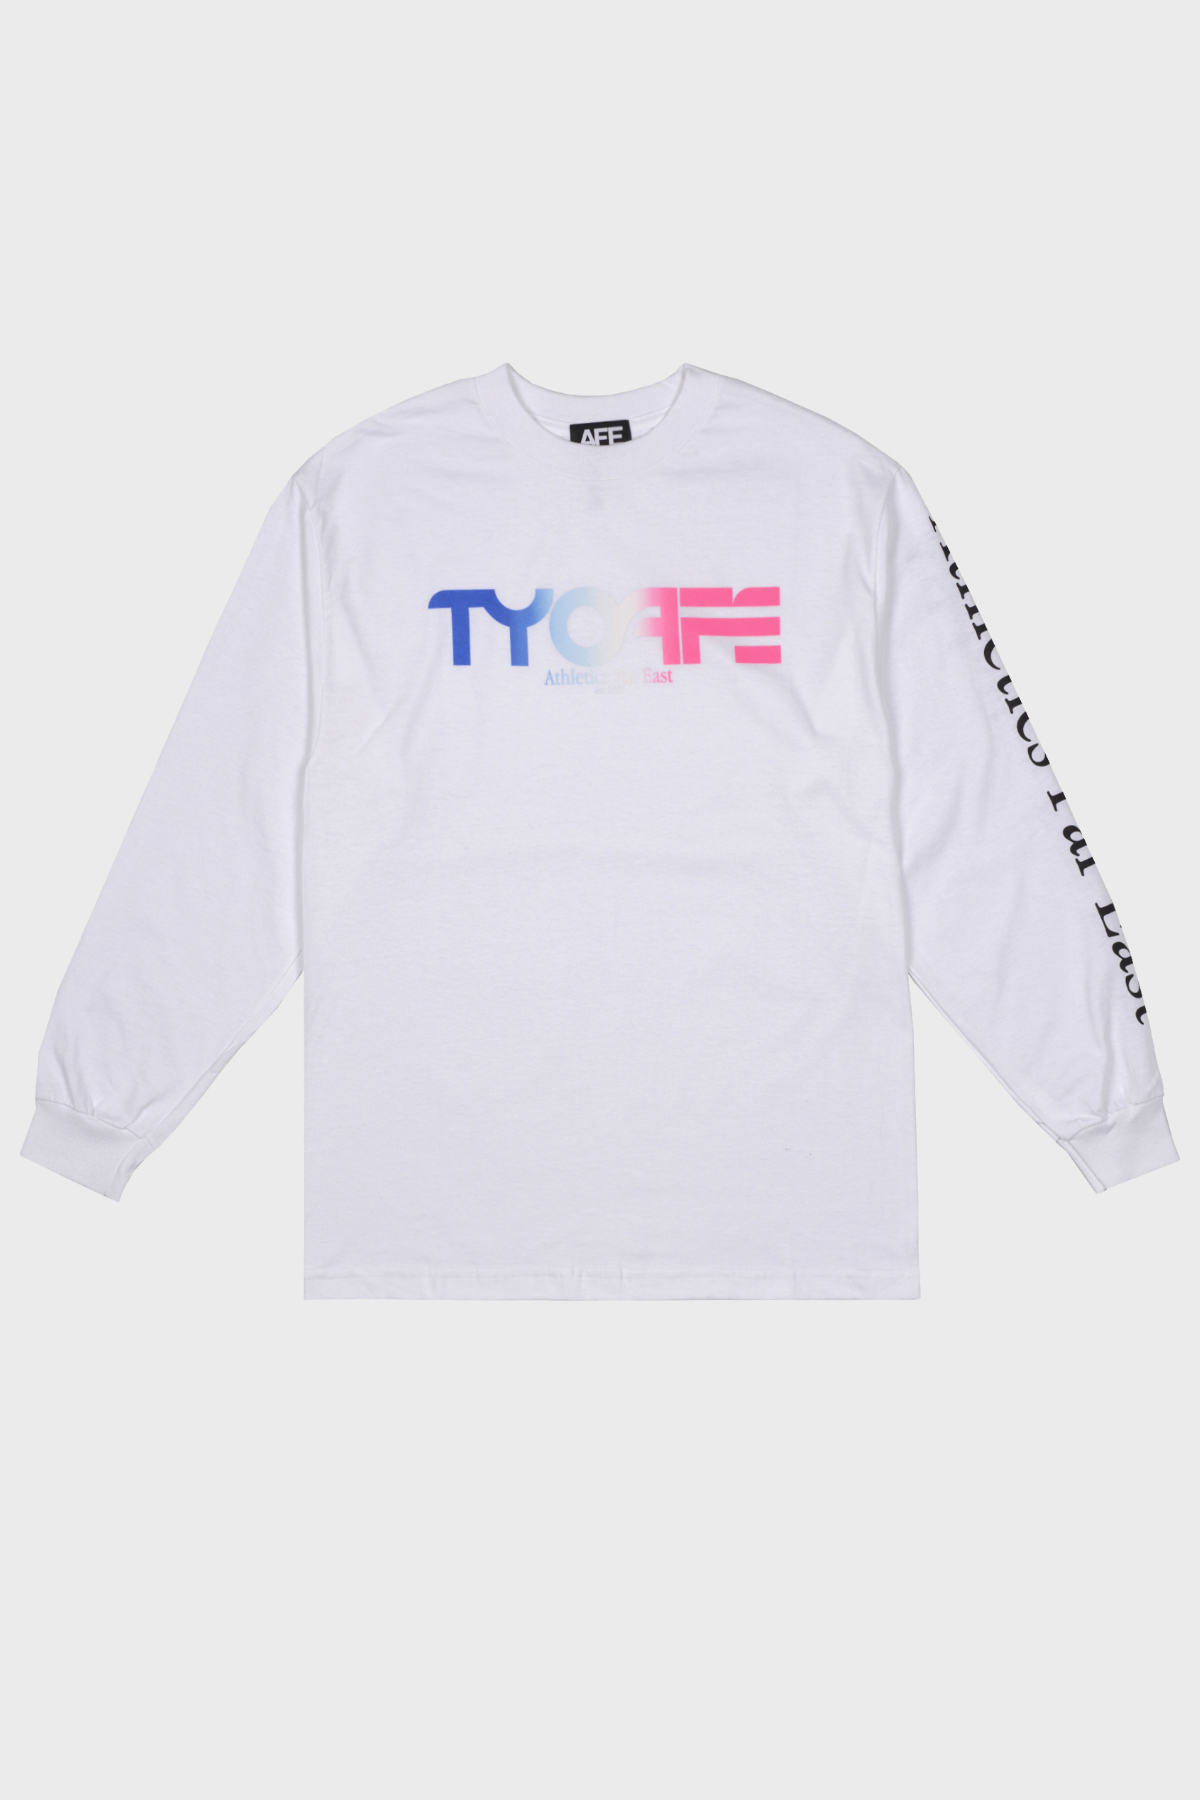 Athletics Far East - AFE TYO Long Sleeve Tee - White